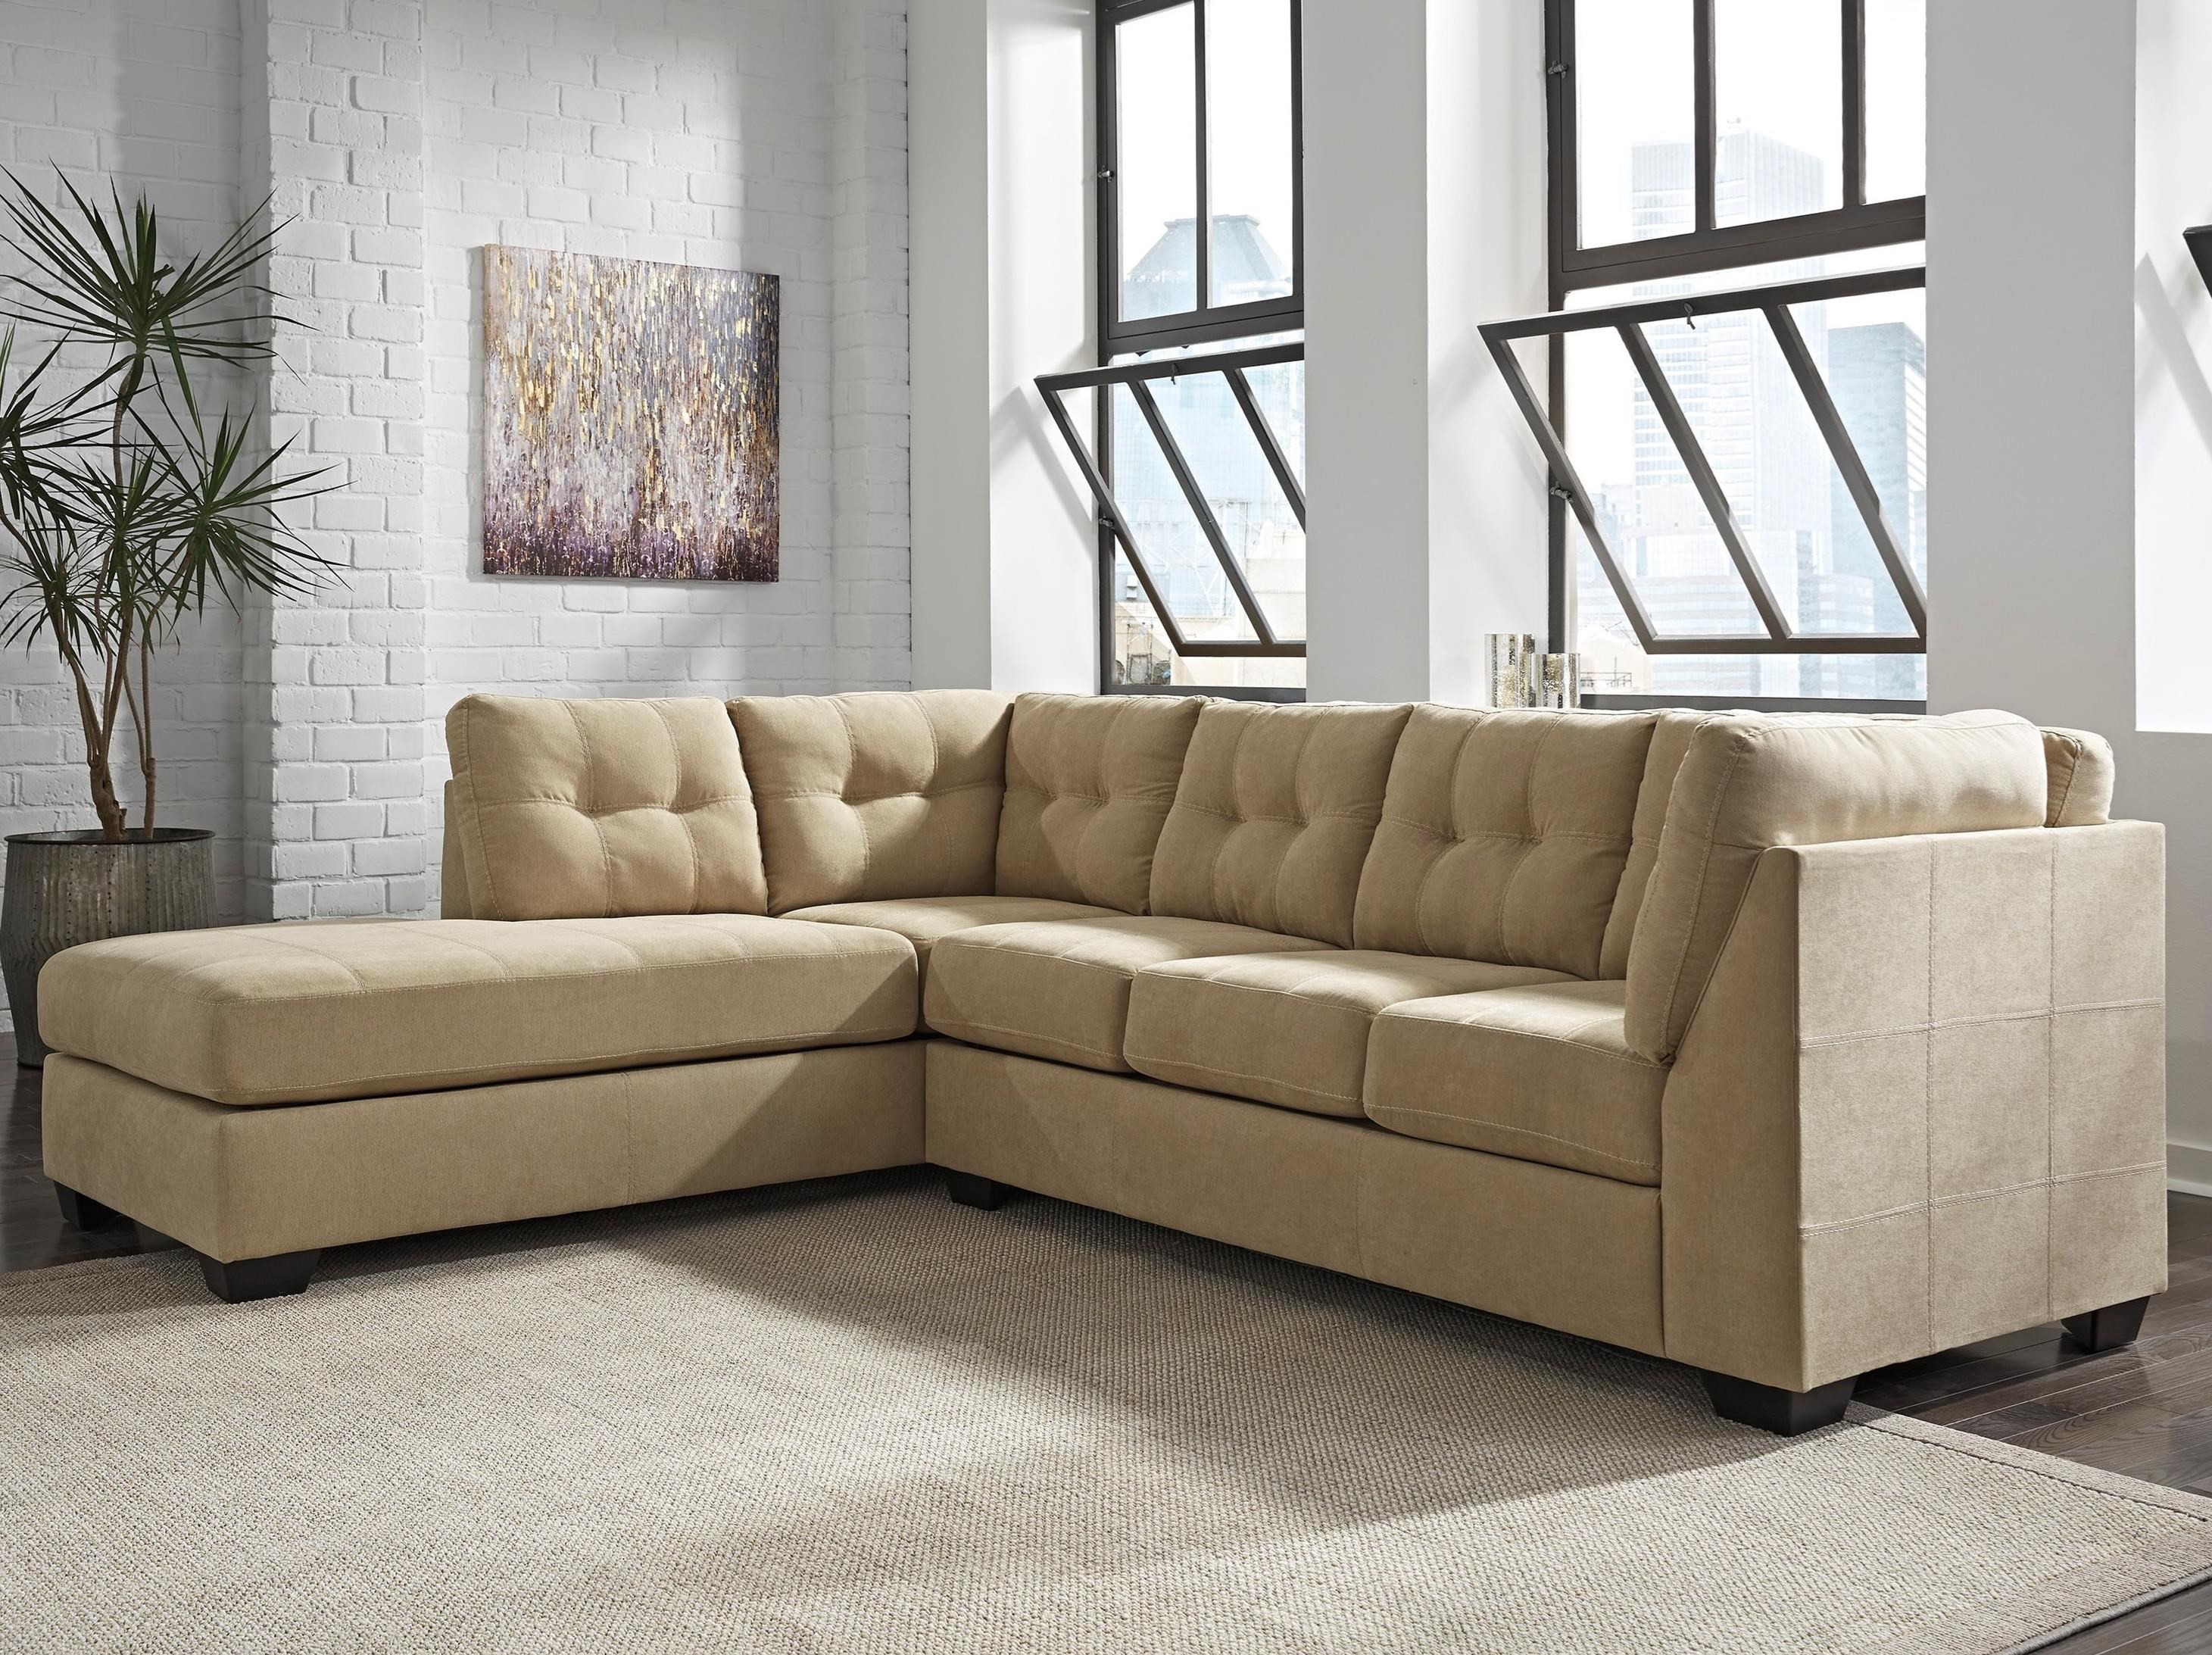 Benchcraft Maier - Cocoa 2-Piece Sectional w/ Sleeper & Chaise - Item Number: 4520316+83